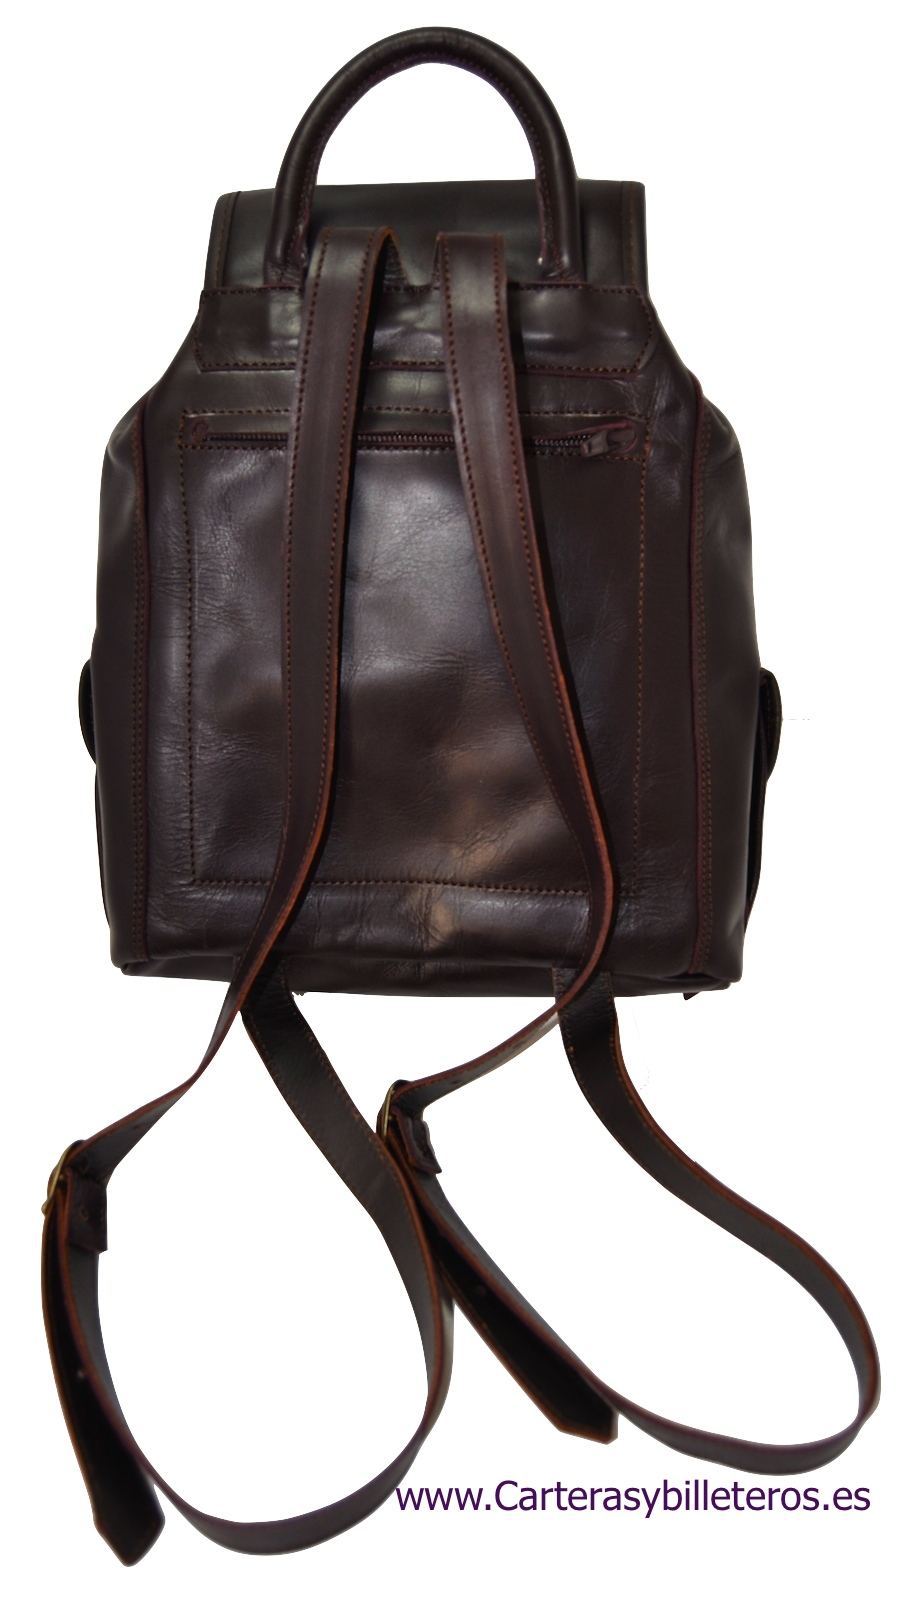 PONY LEATHER BAG HANDMADE DARK BROWN REVERSE PHOTO